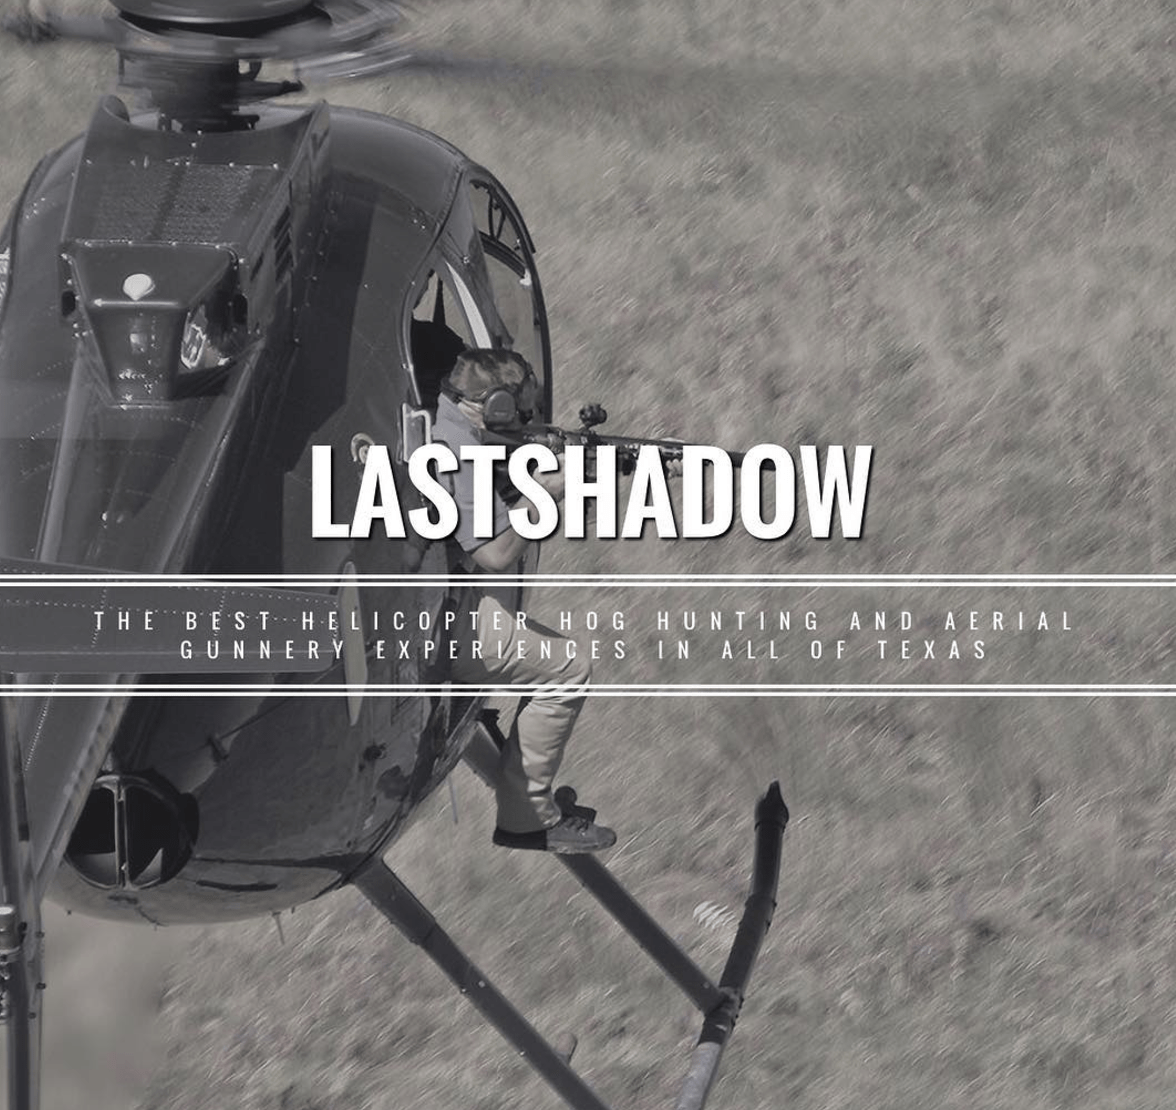 Last Shadow: Classic Helicopter Hog Hunt